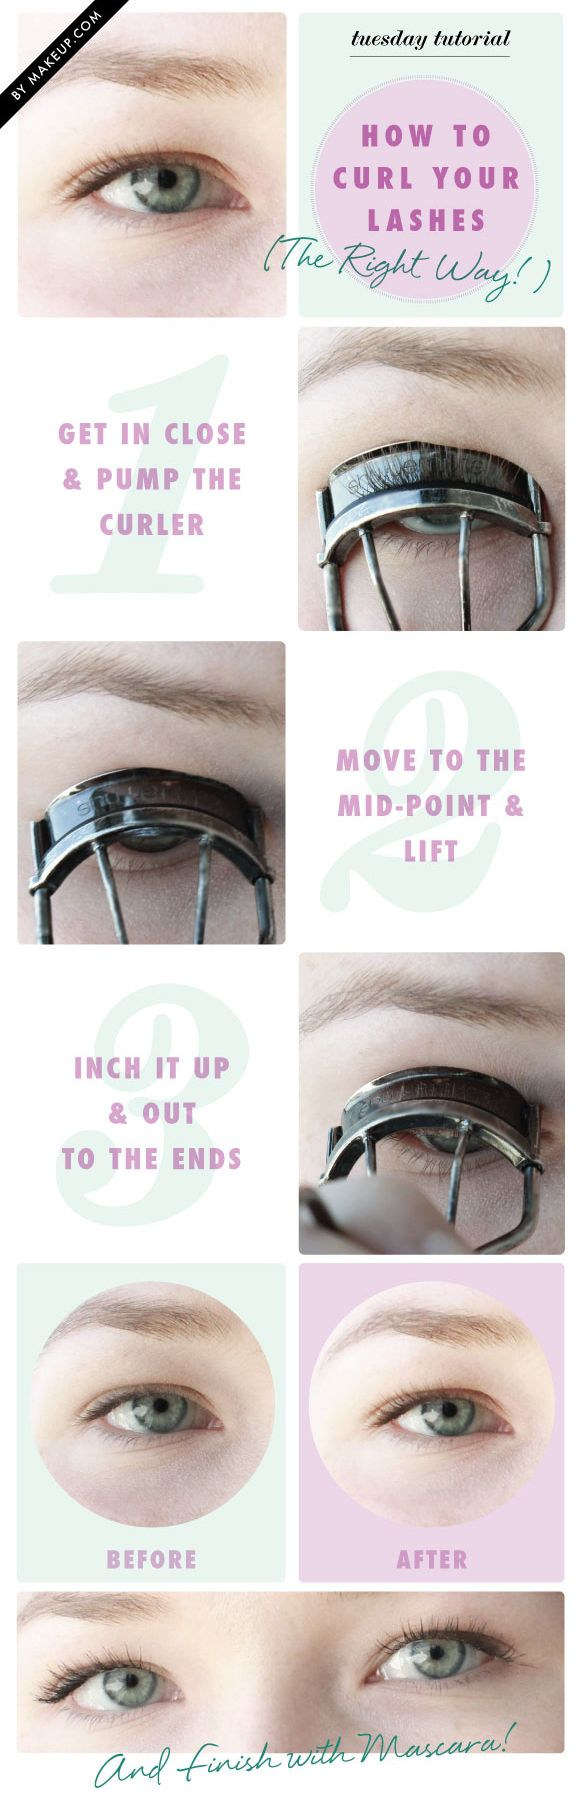 How to Curl Your Eyelashes How to Curl Your Eyelashes new pictures